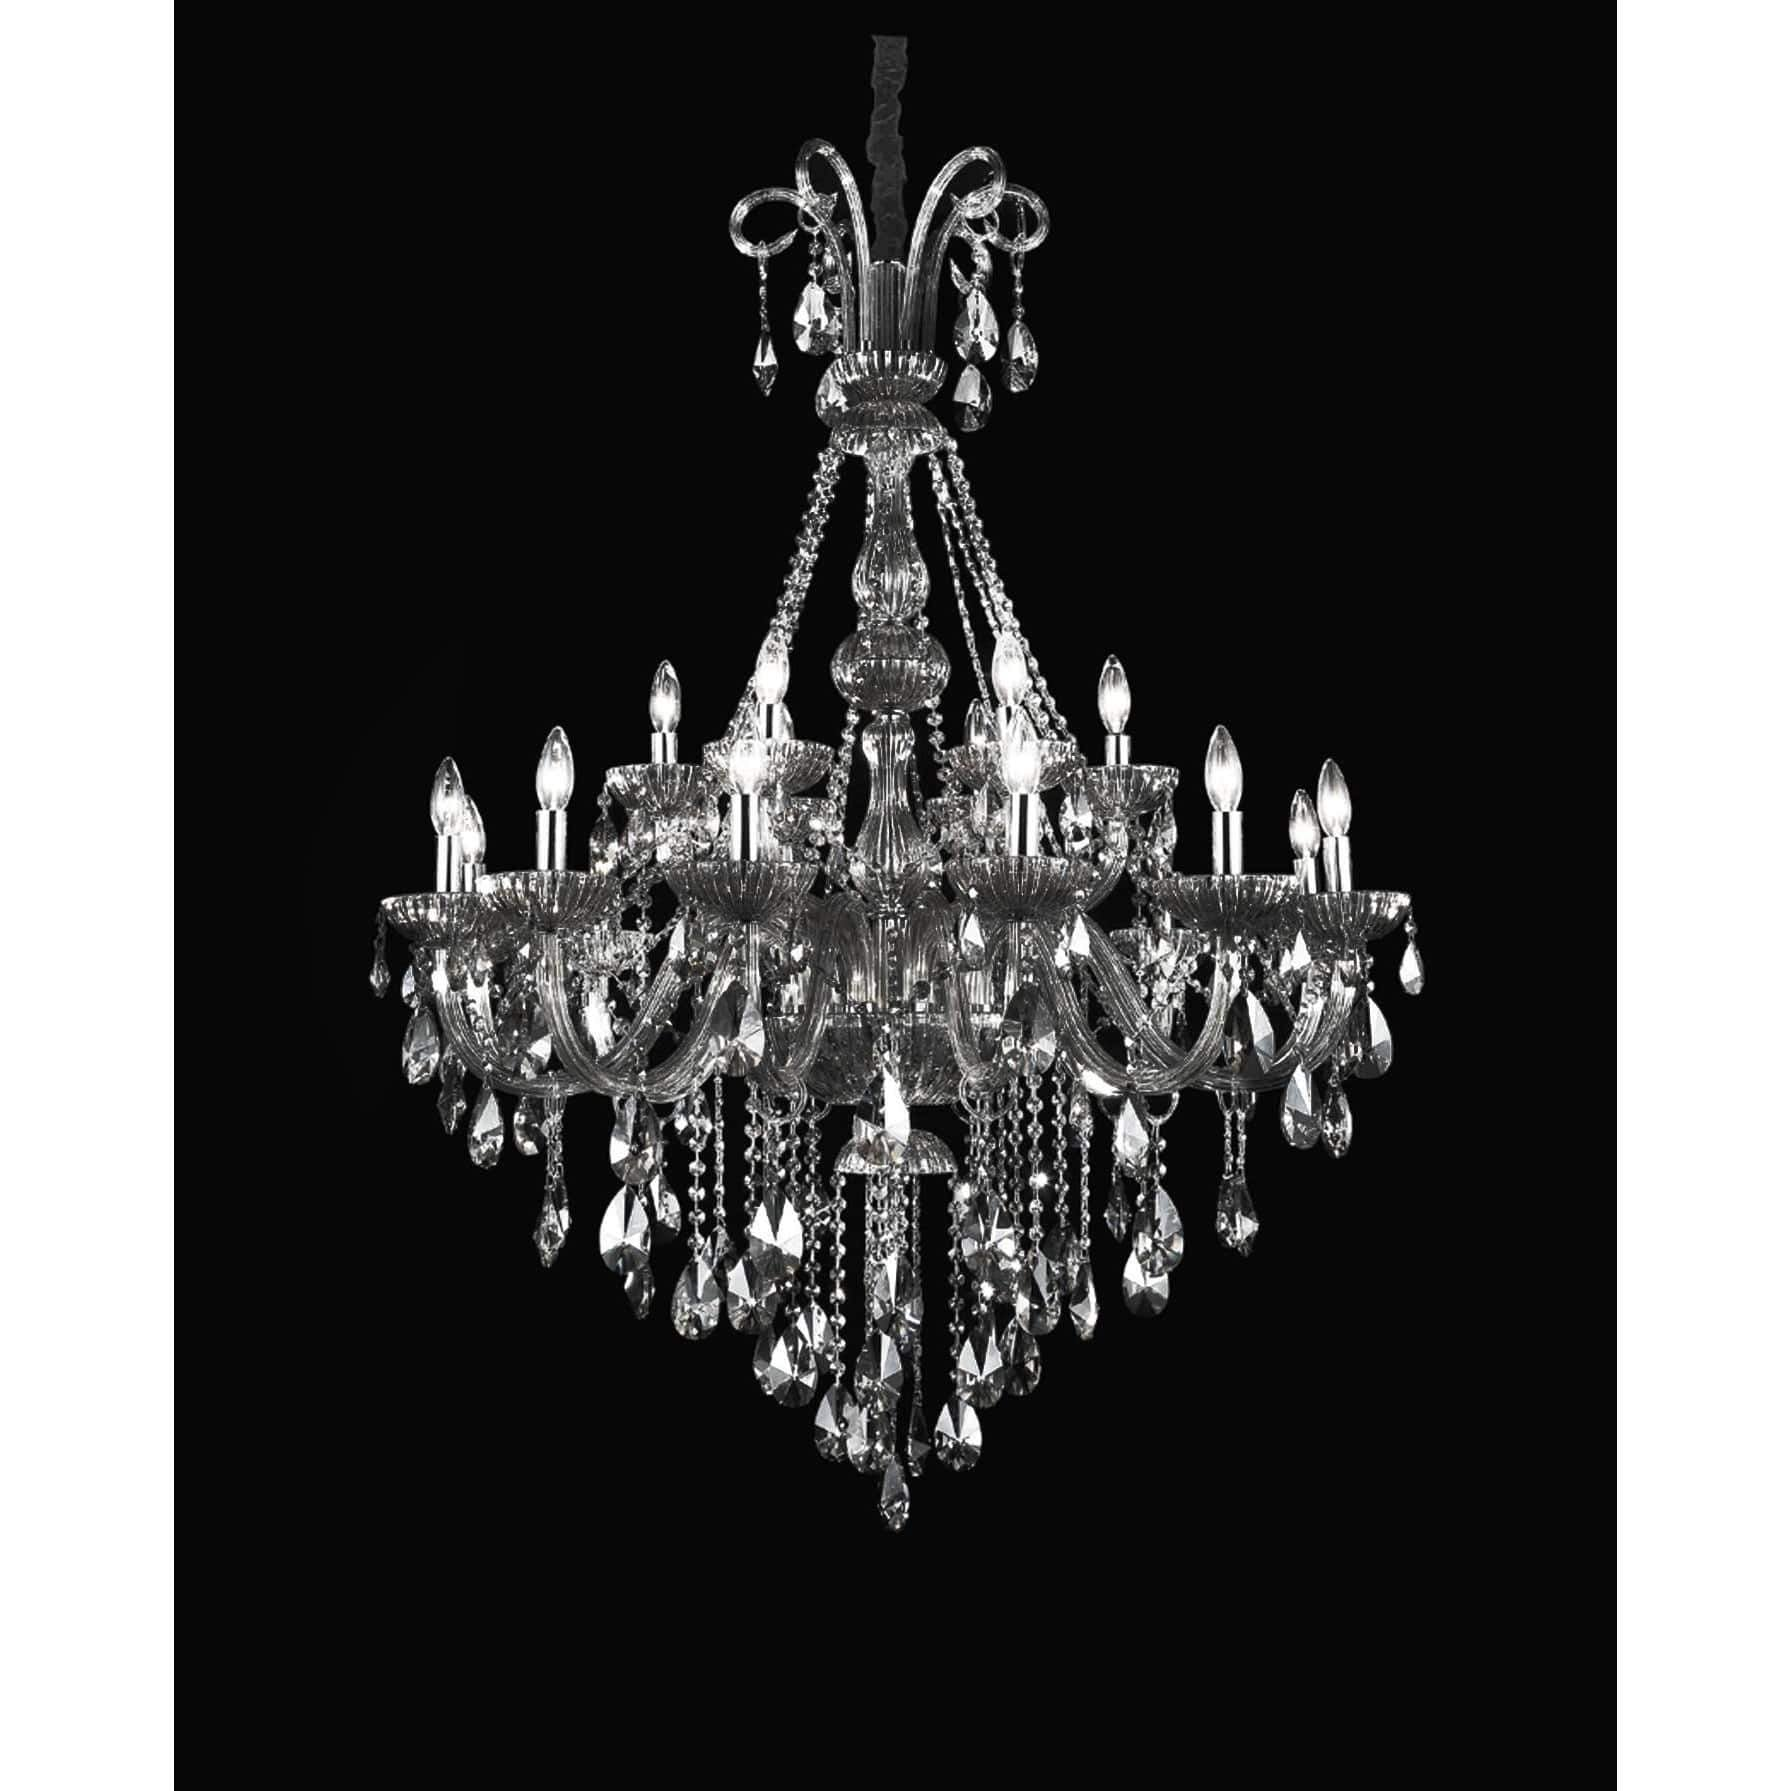 Casper 18 Light Up Chandelier with Chrome finish by CWI Lighting 8393P39C-18 (Black)